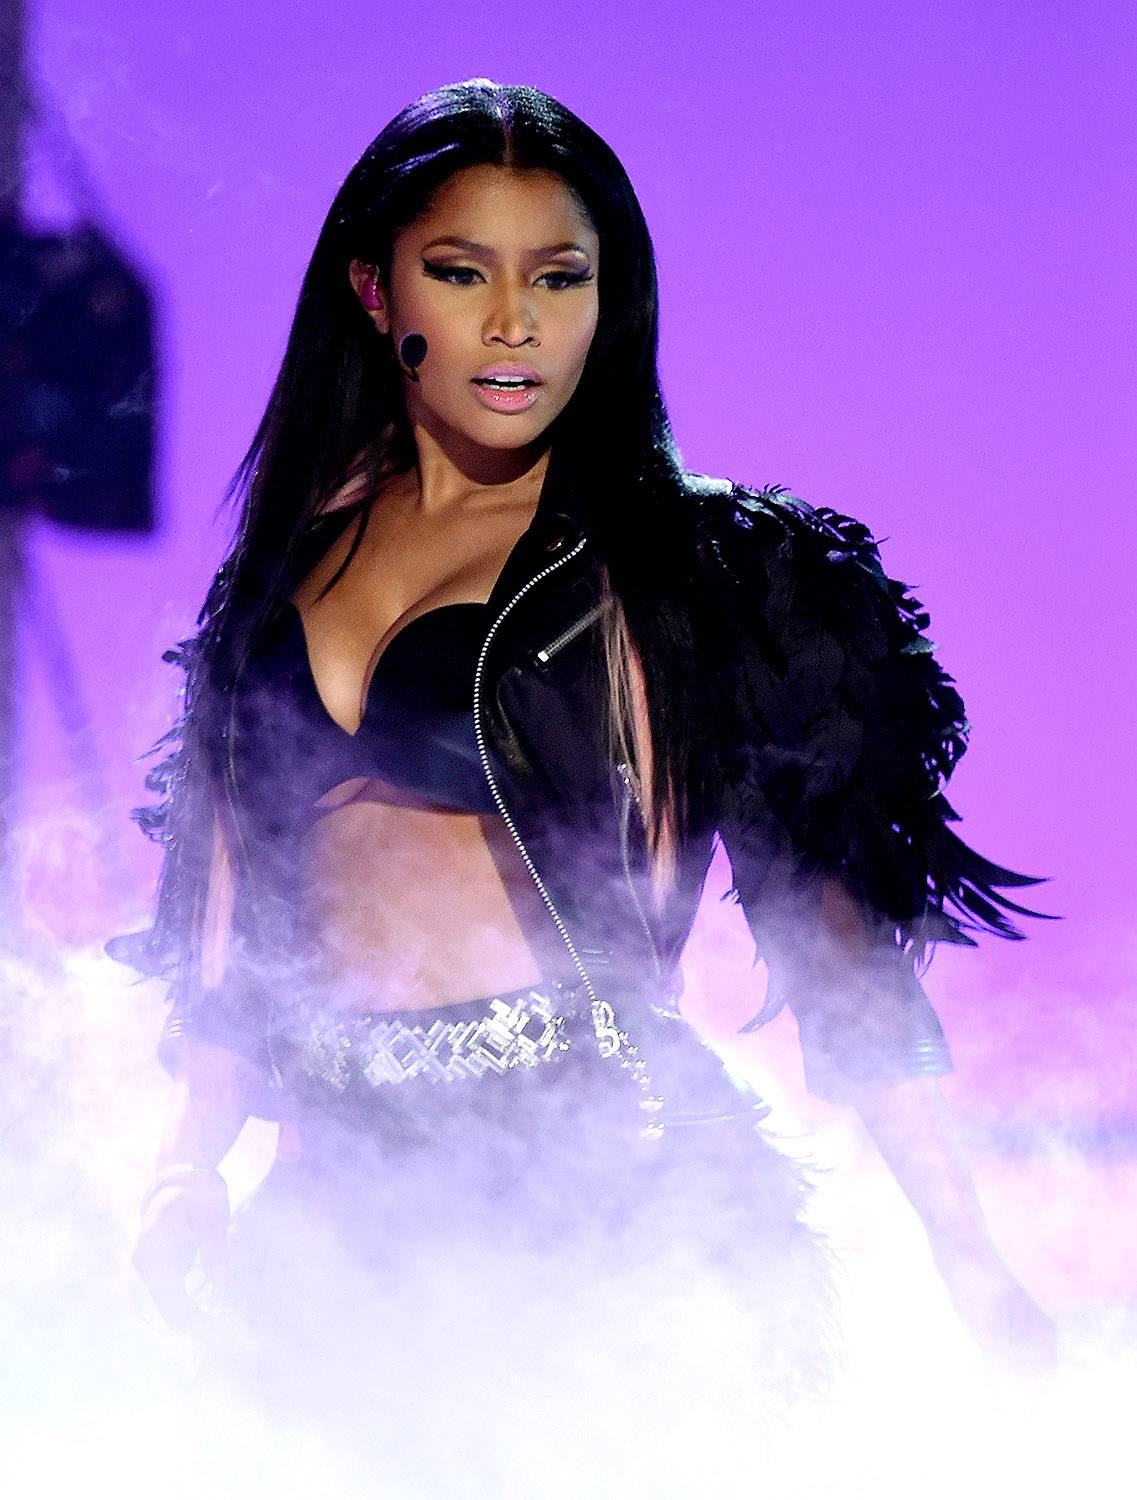 """Nicki Minaj - Our favorite femcee reps Queens to the death, but she's a Trini gal at the core. Did you not hear her latest track """"Trini Dem Girls""""? (Photo: Ethan Miller/Getty Images)"""